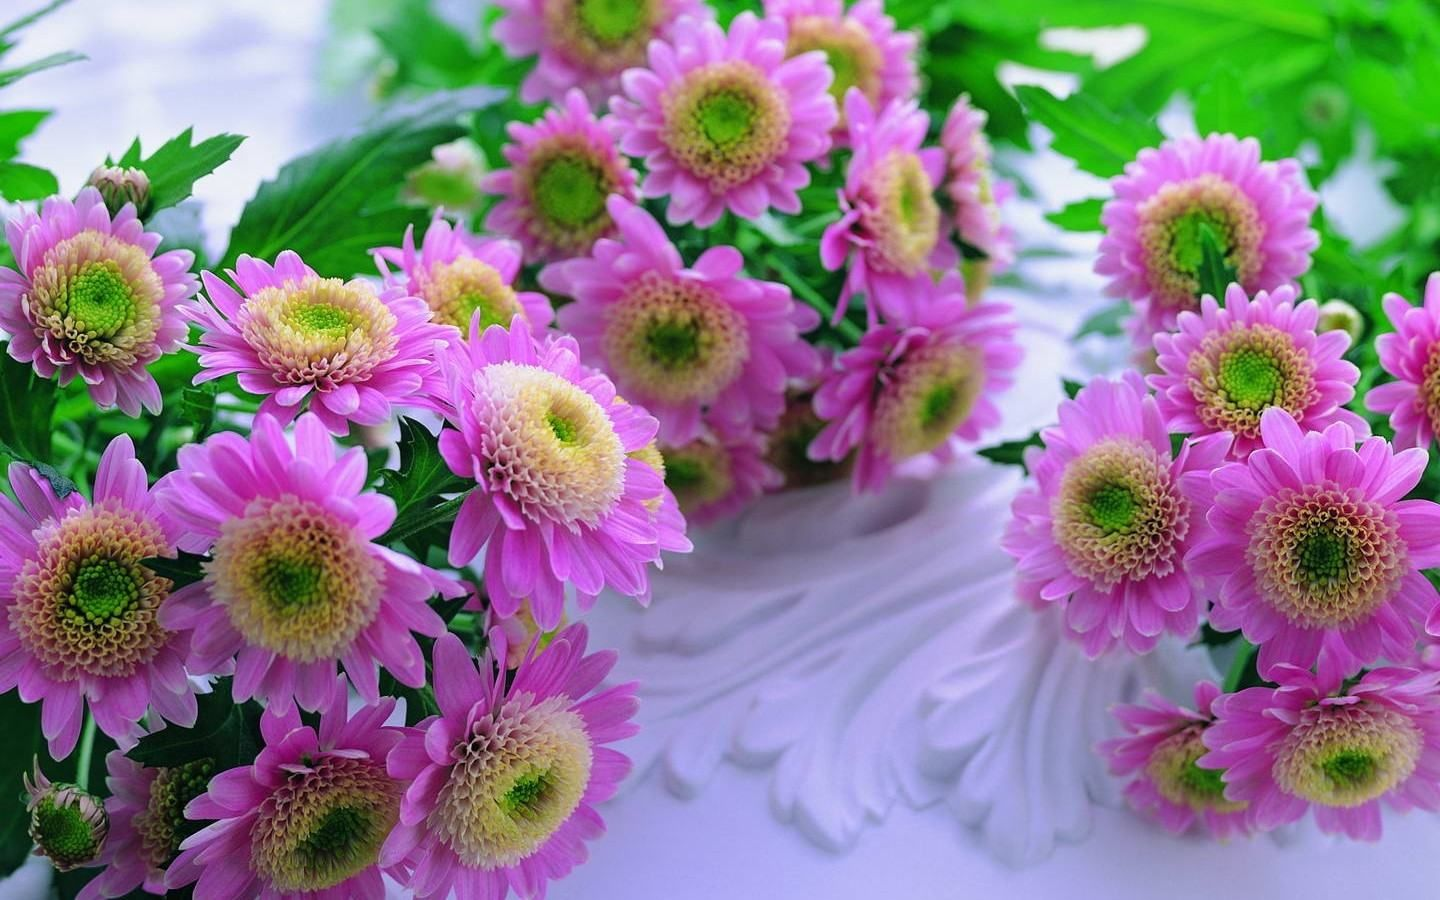 Flowers Background Pictures For Desktop Free Download Hd Background